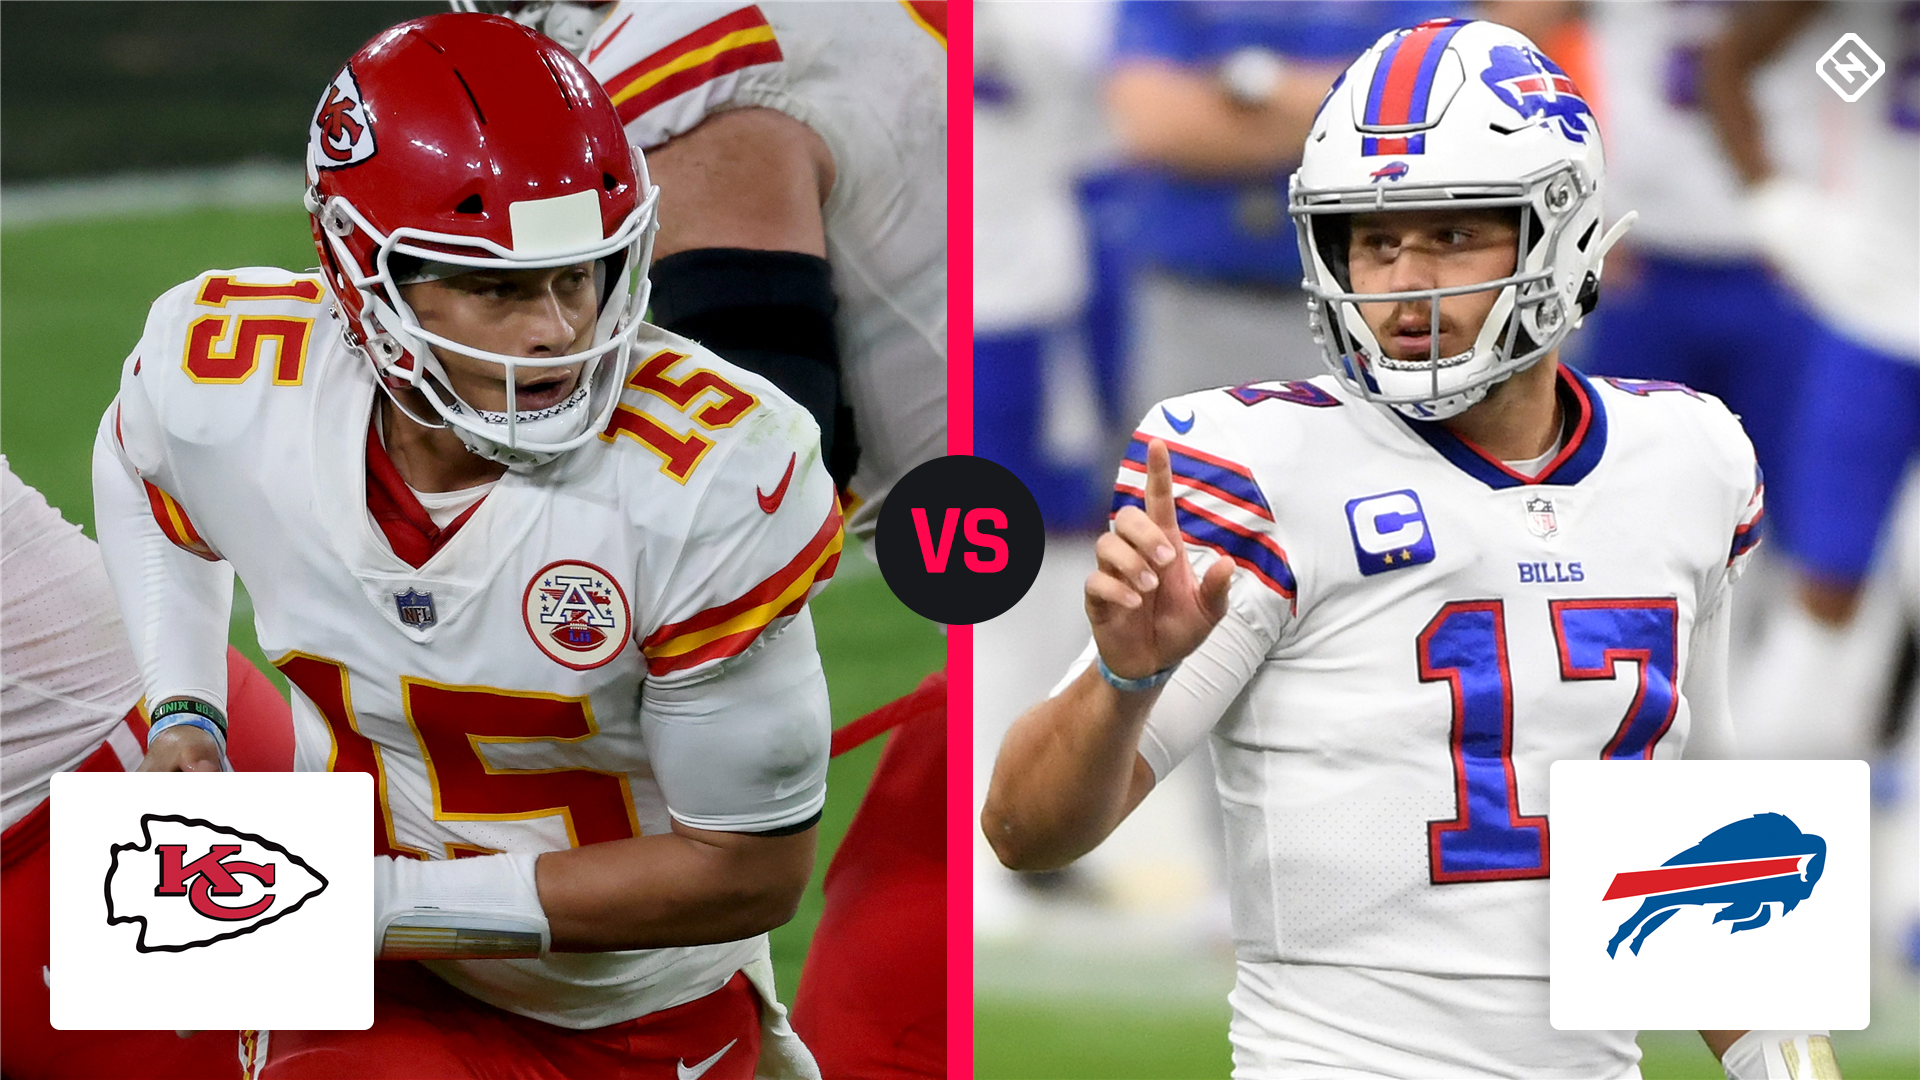 Chiefs vs. Bills odds, prediction, betting trends for NFL's postponed Week 6 game